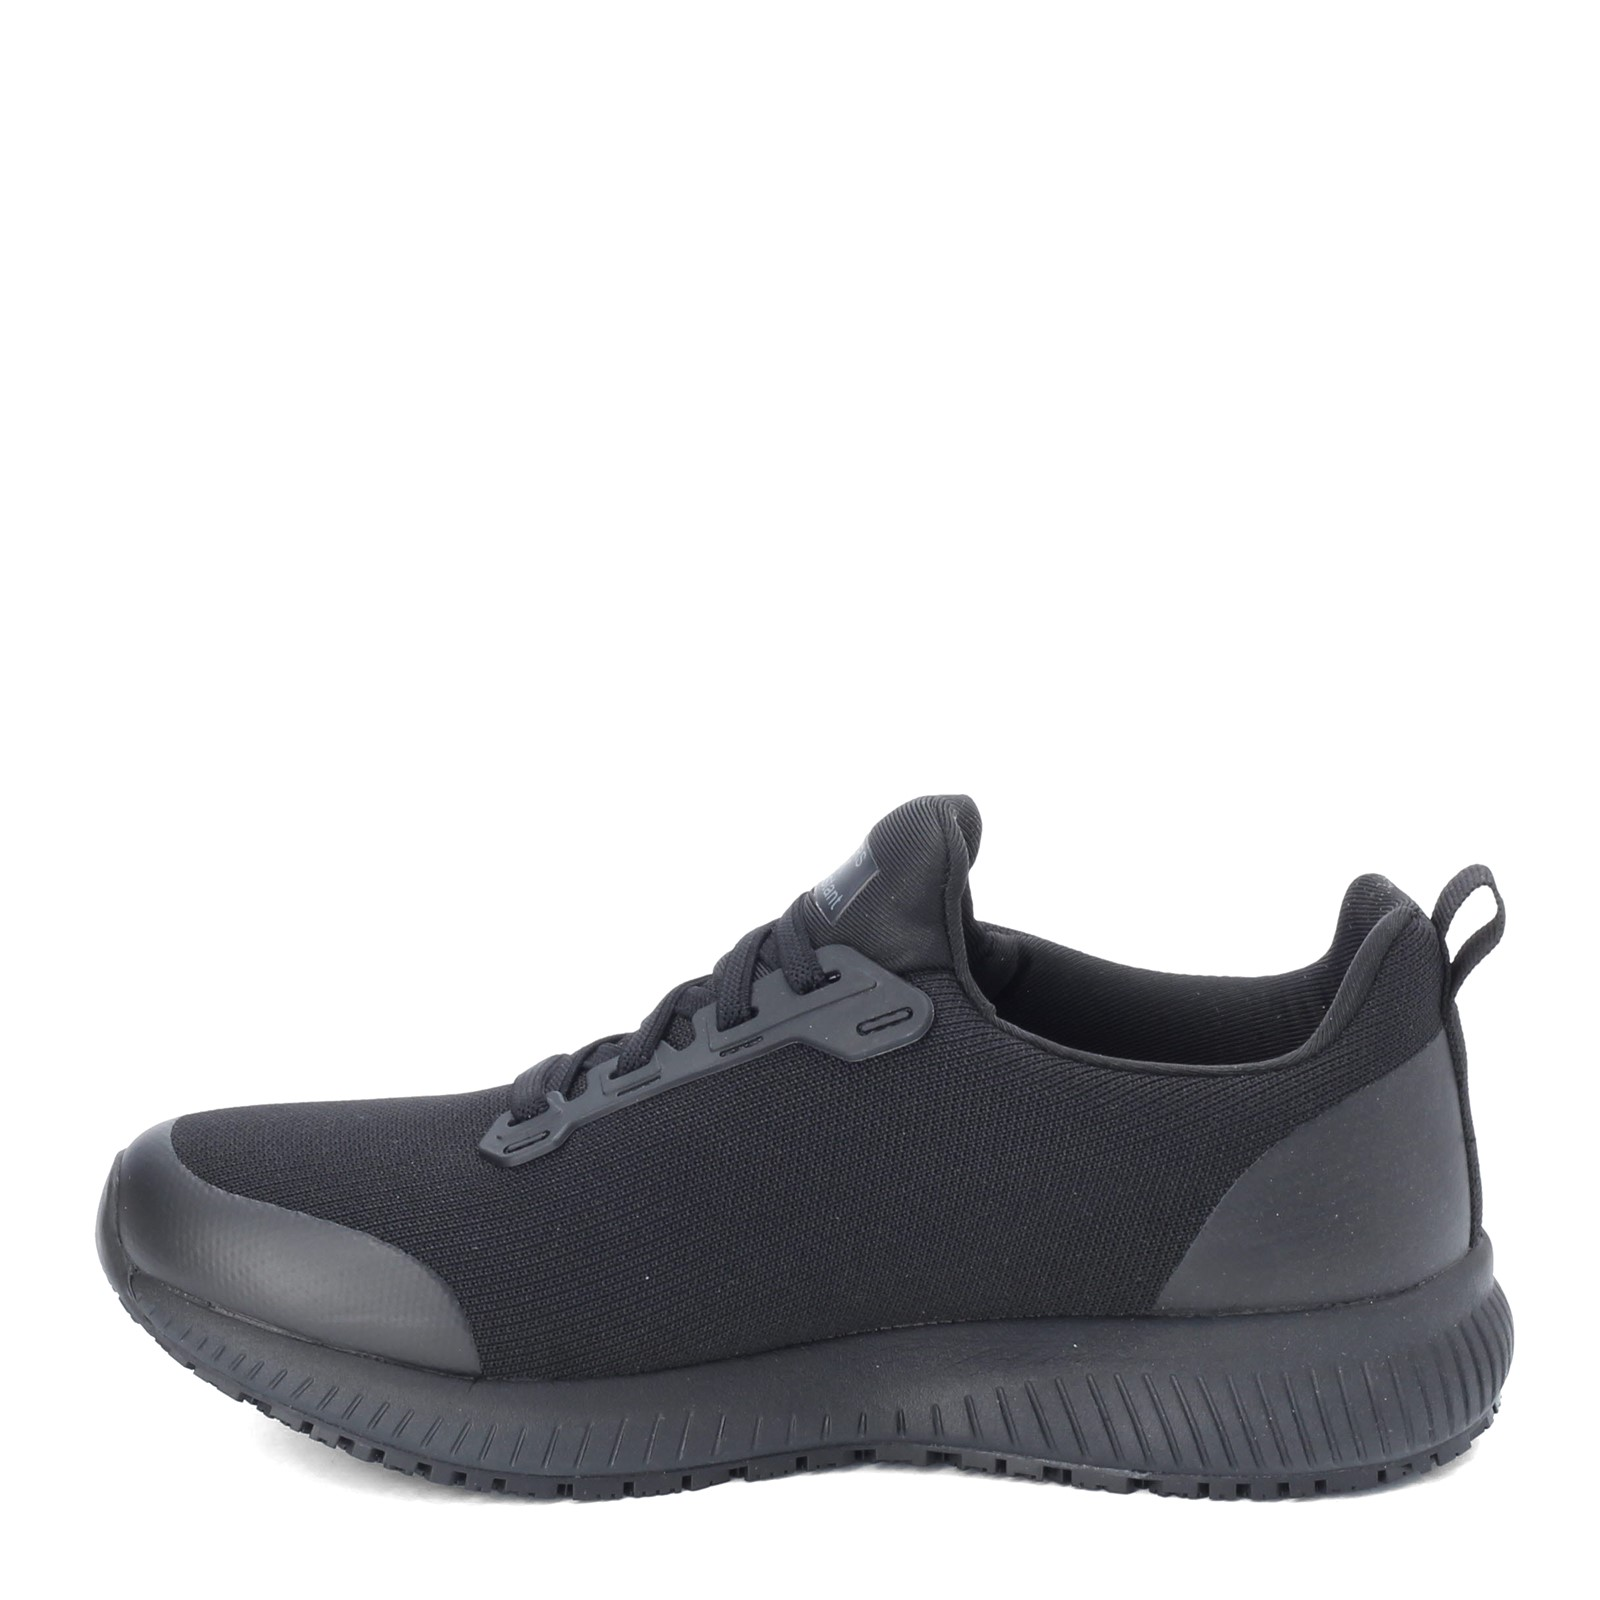 61b42b41b4de Home  Women s Skechers